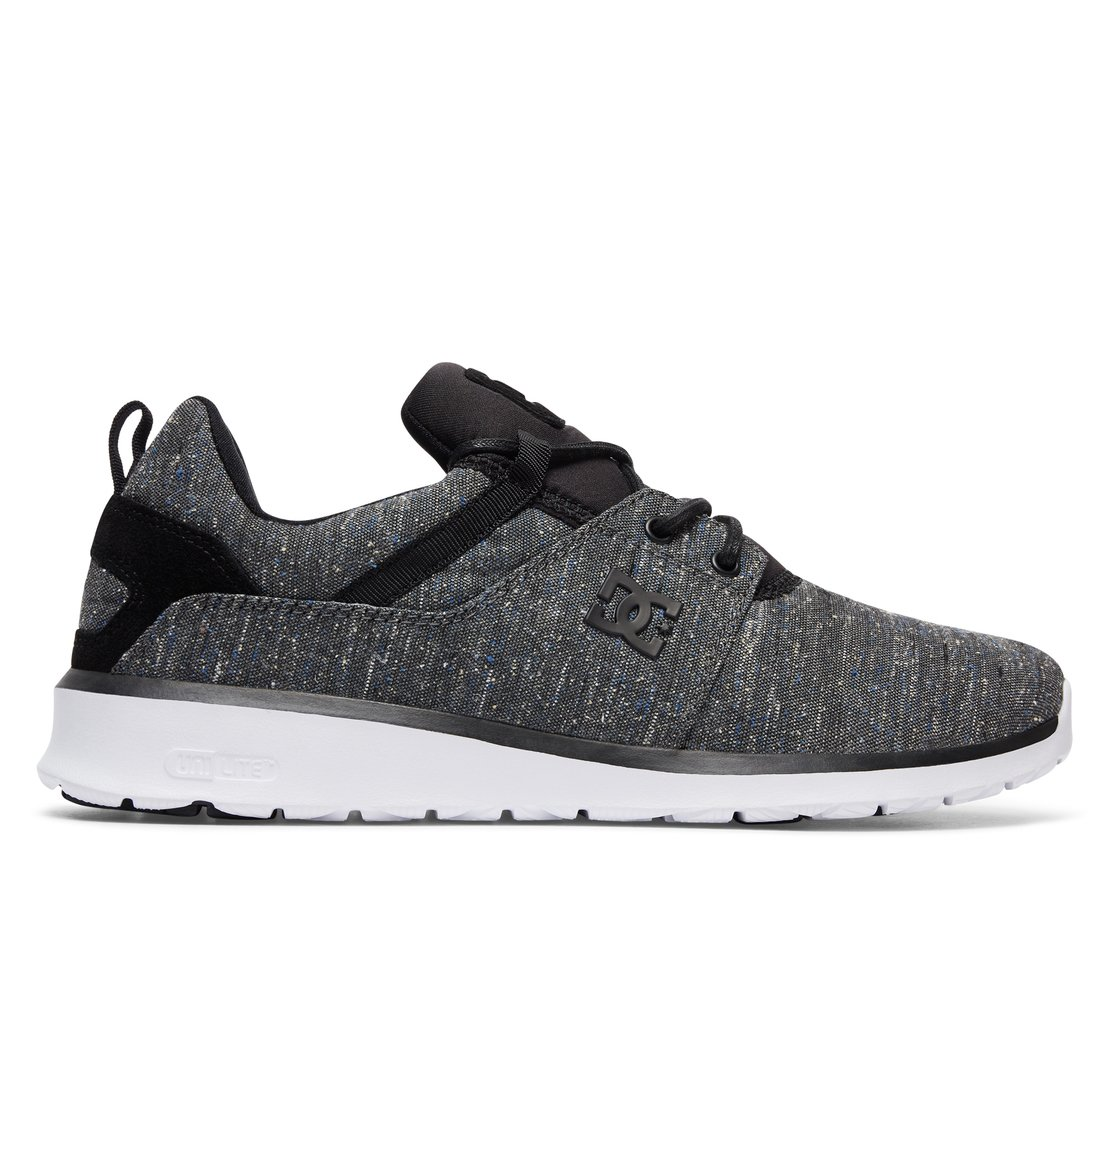 Chaussures DC Shoes Heathrow noires homme h6pz58eRKs